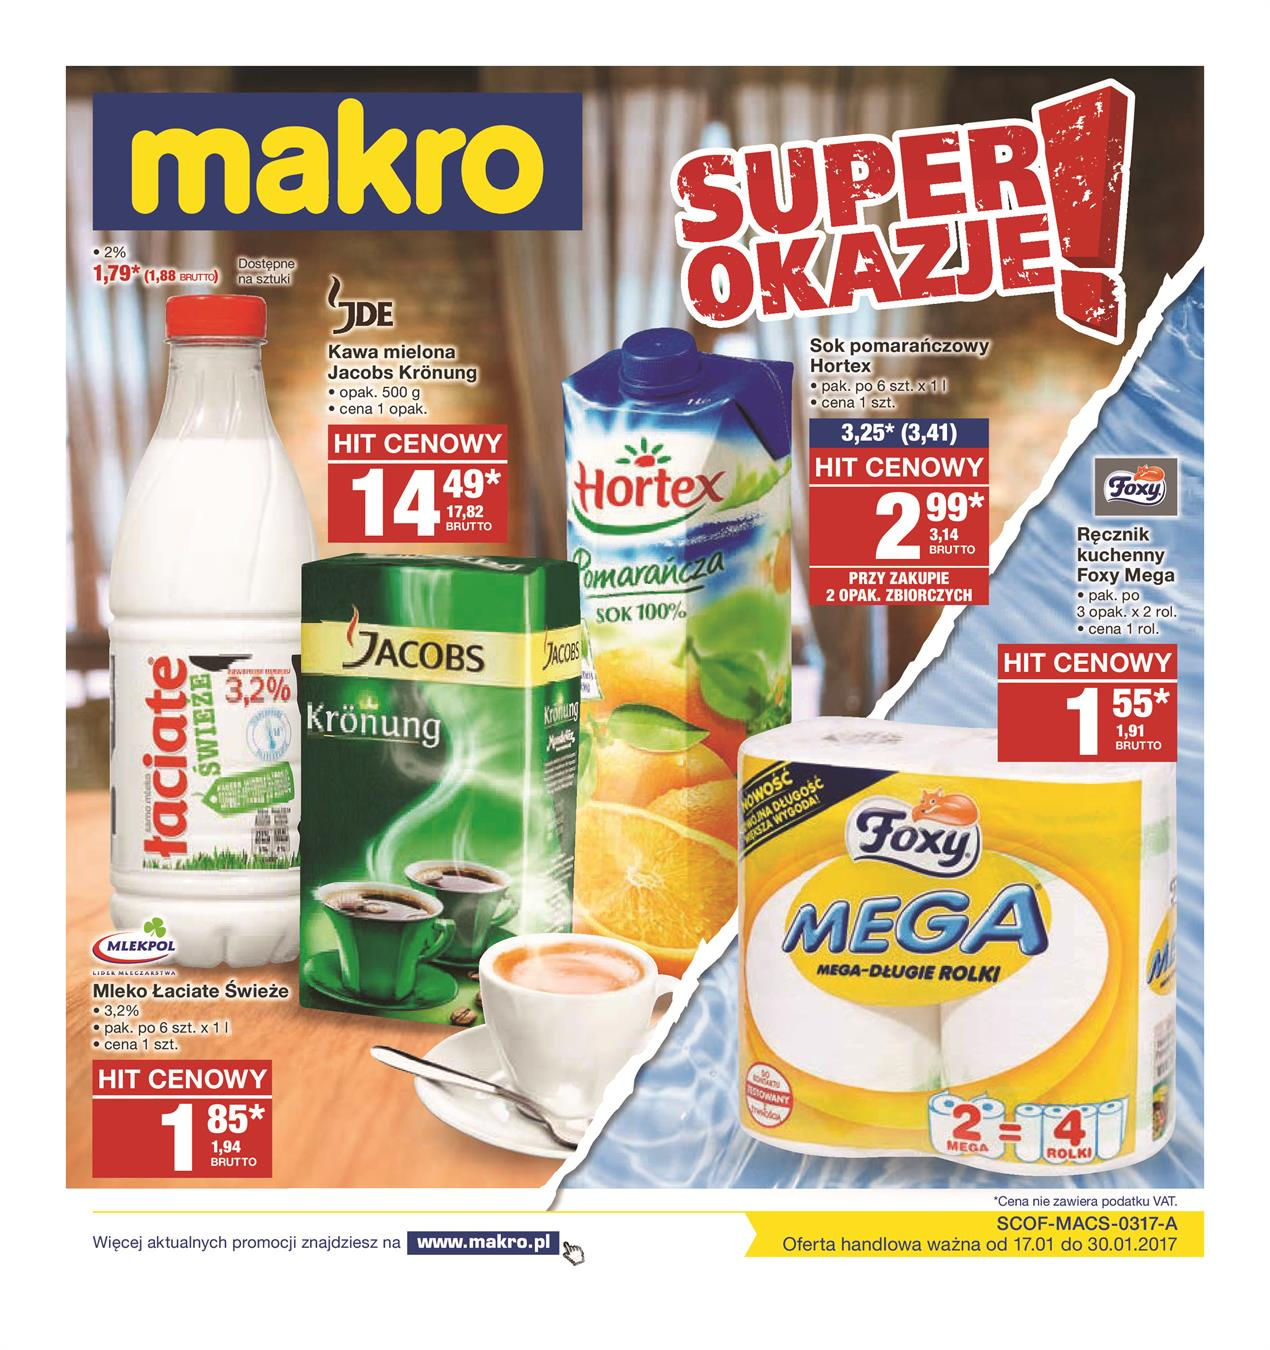 Gazetka MAKRO CASH AND CARRY POLSKA S A nr 1 od 2017-01-17 do 2017-01-30